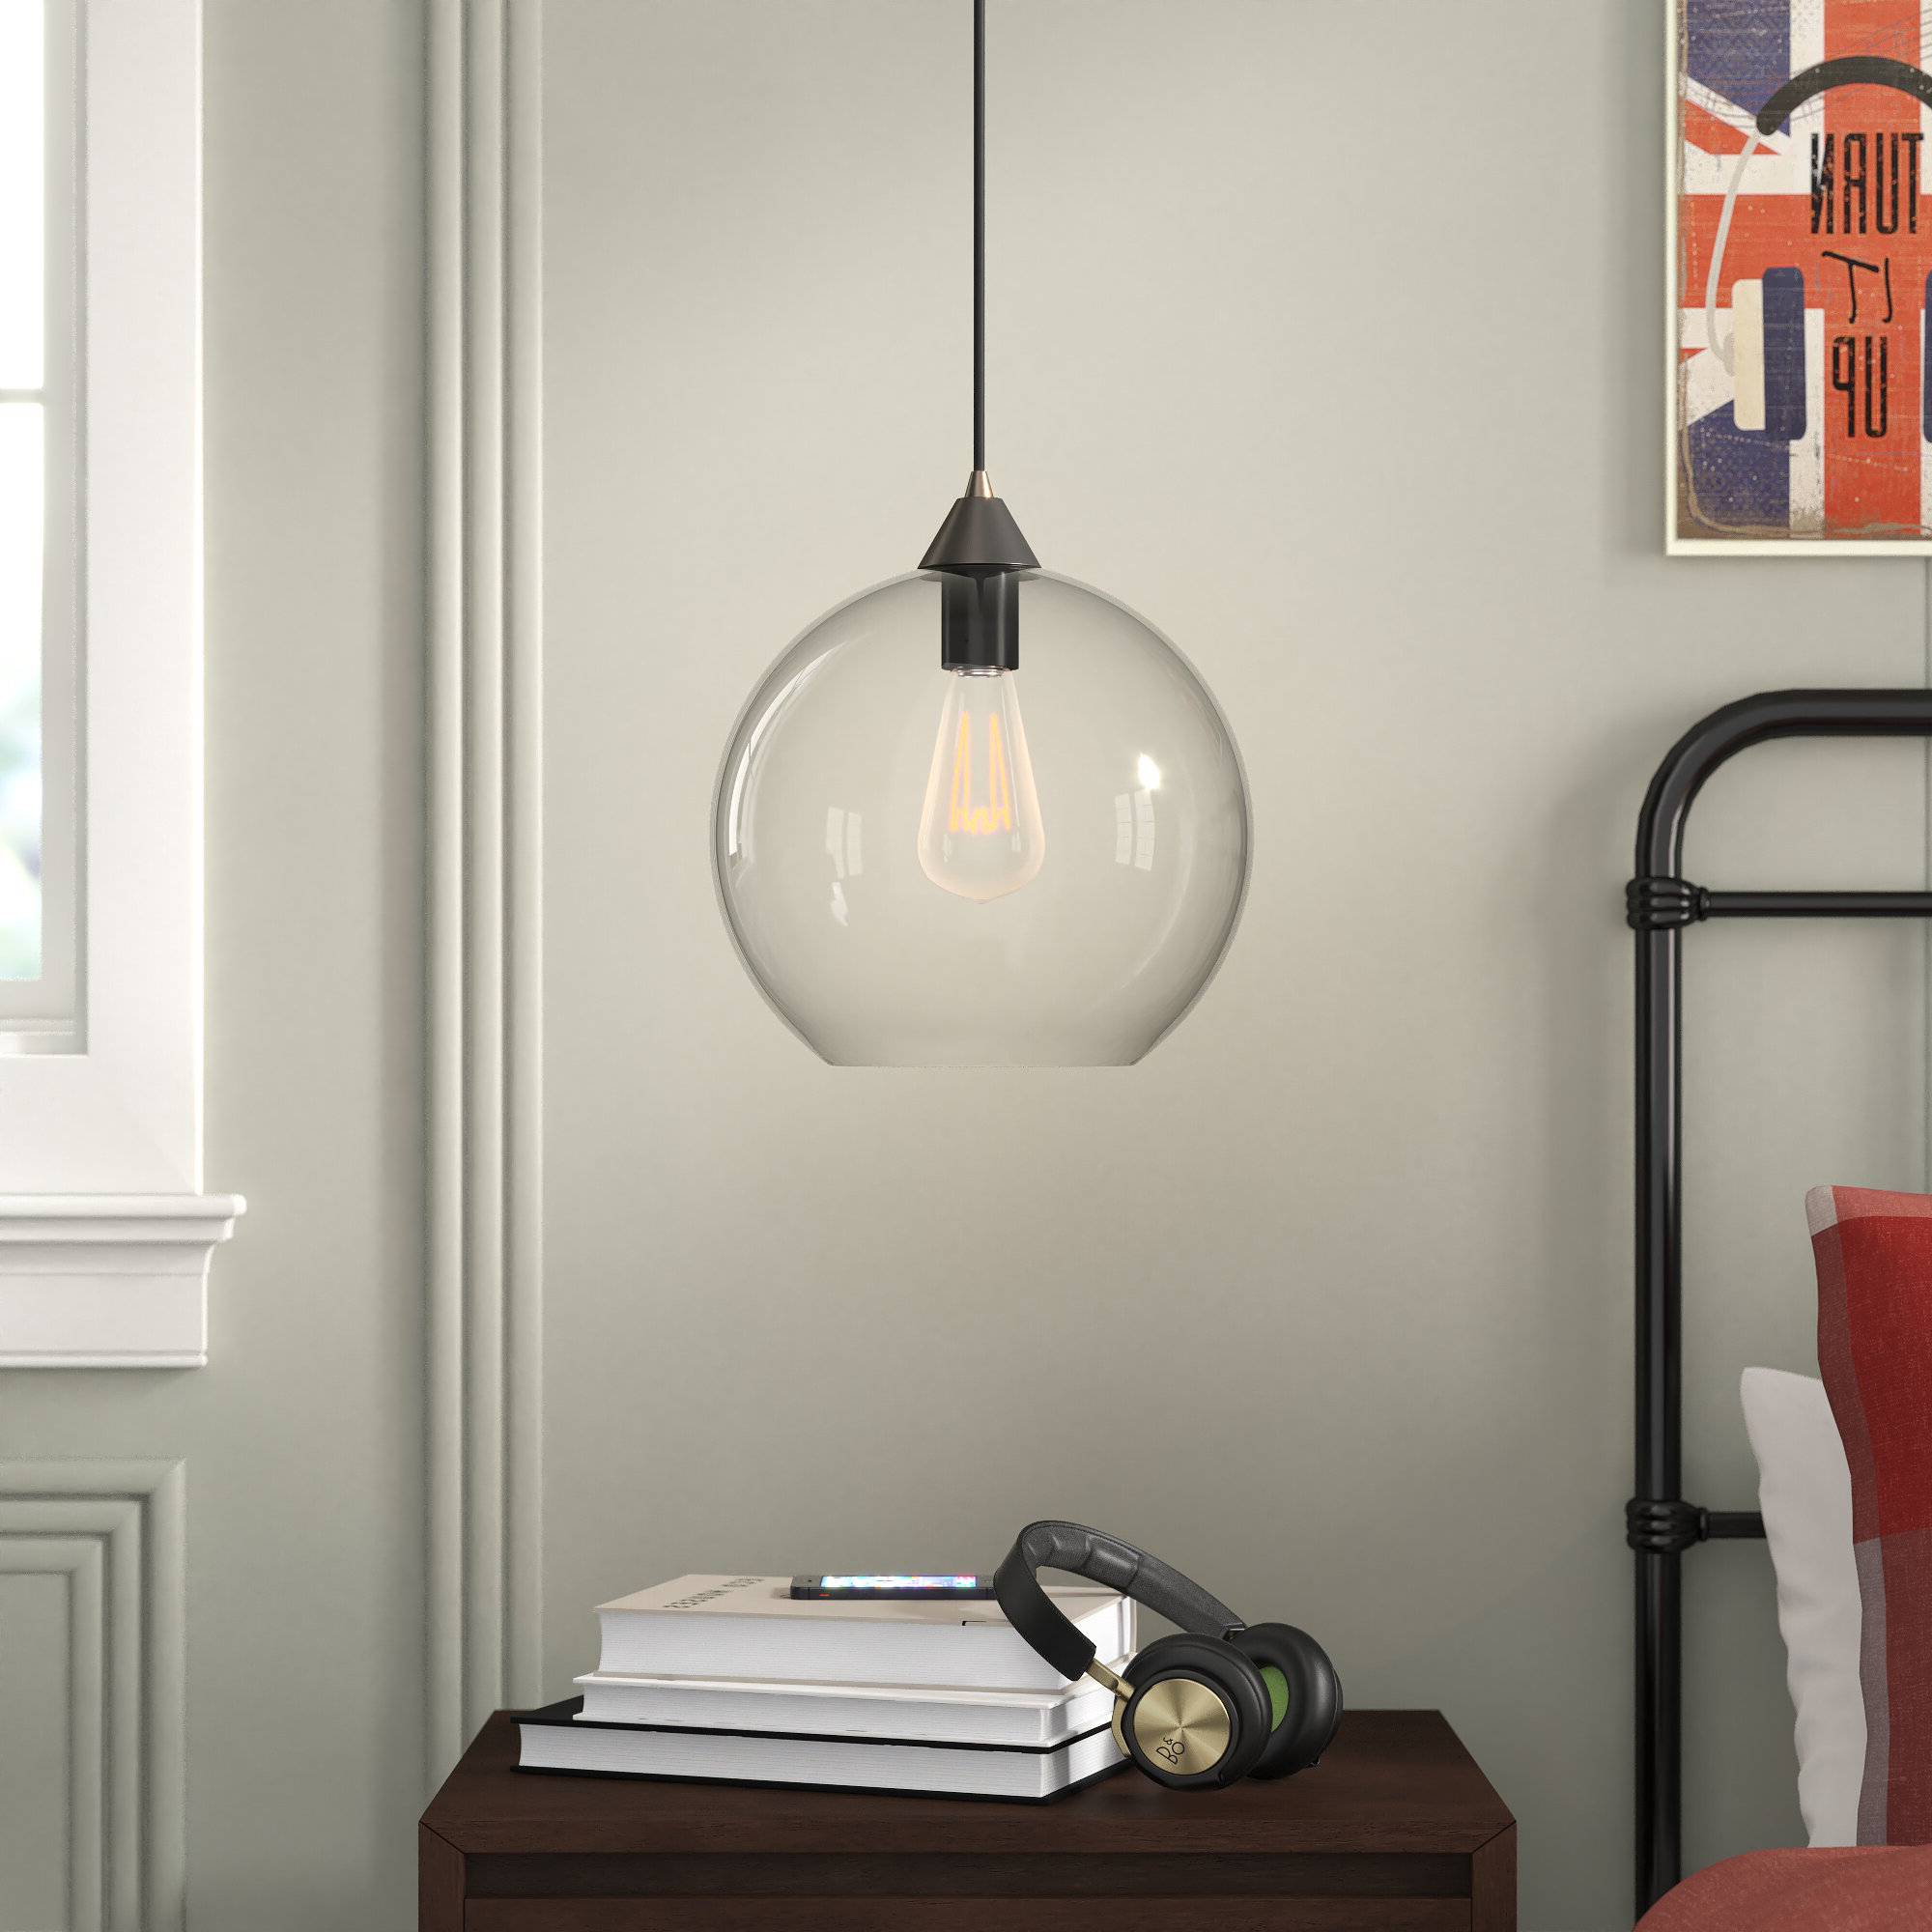 Trendy Gehry 1 Light Single Globe Pendants Throughout Alana 1 Light Single Globe Pendant (View 5 of 20)